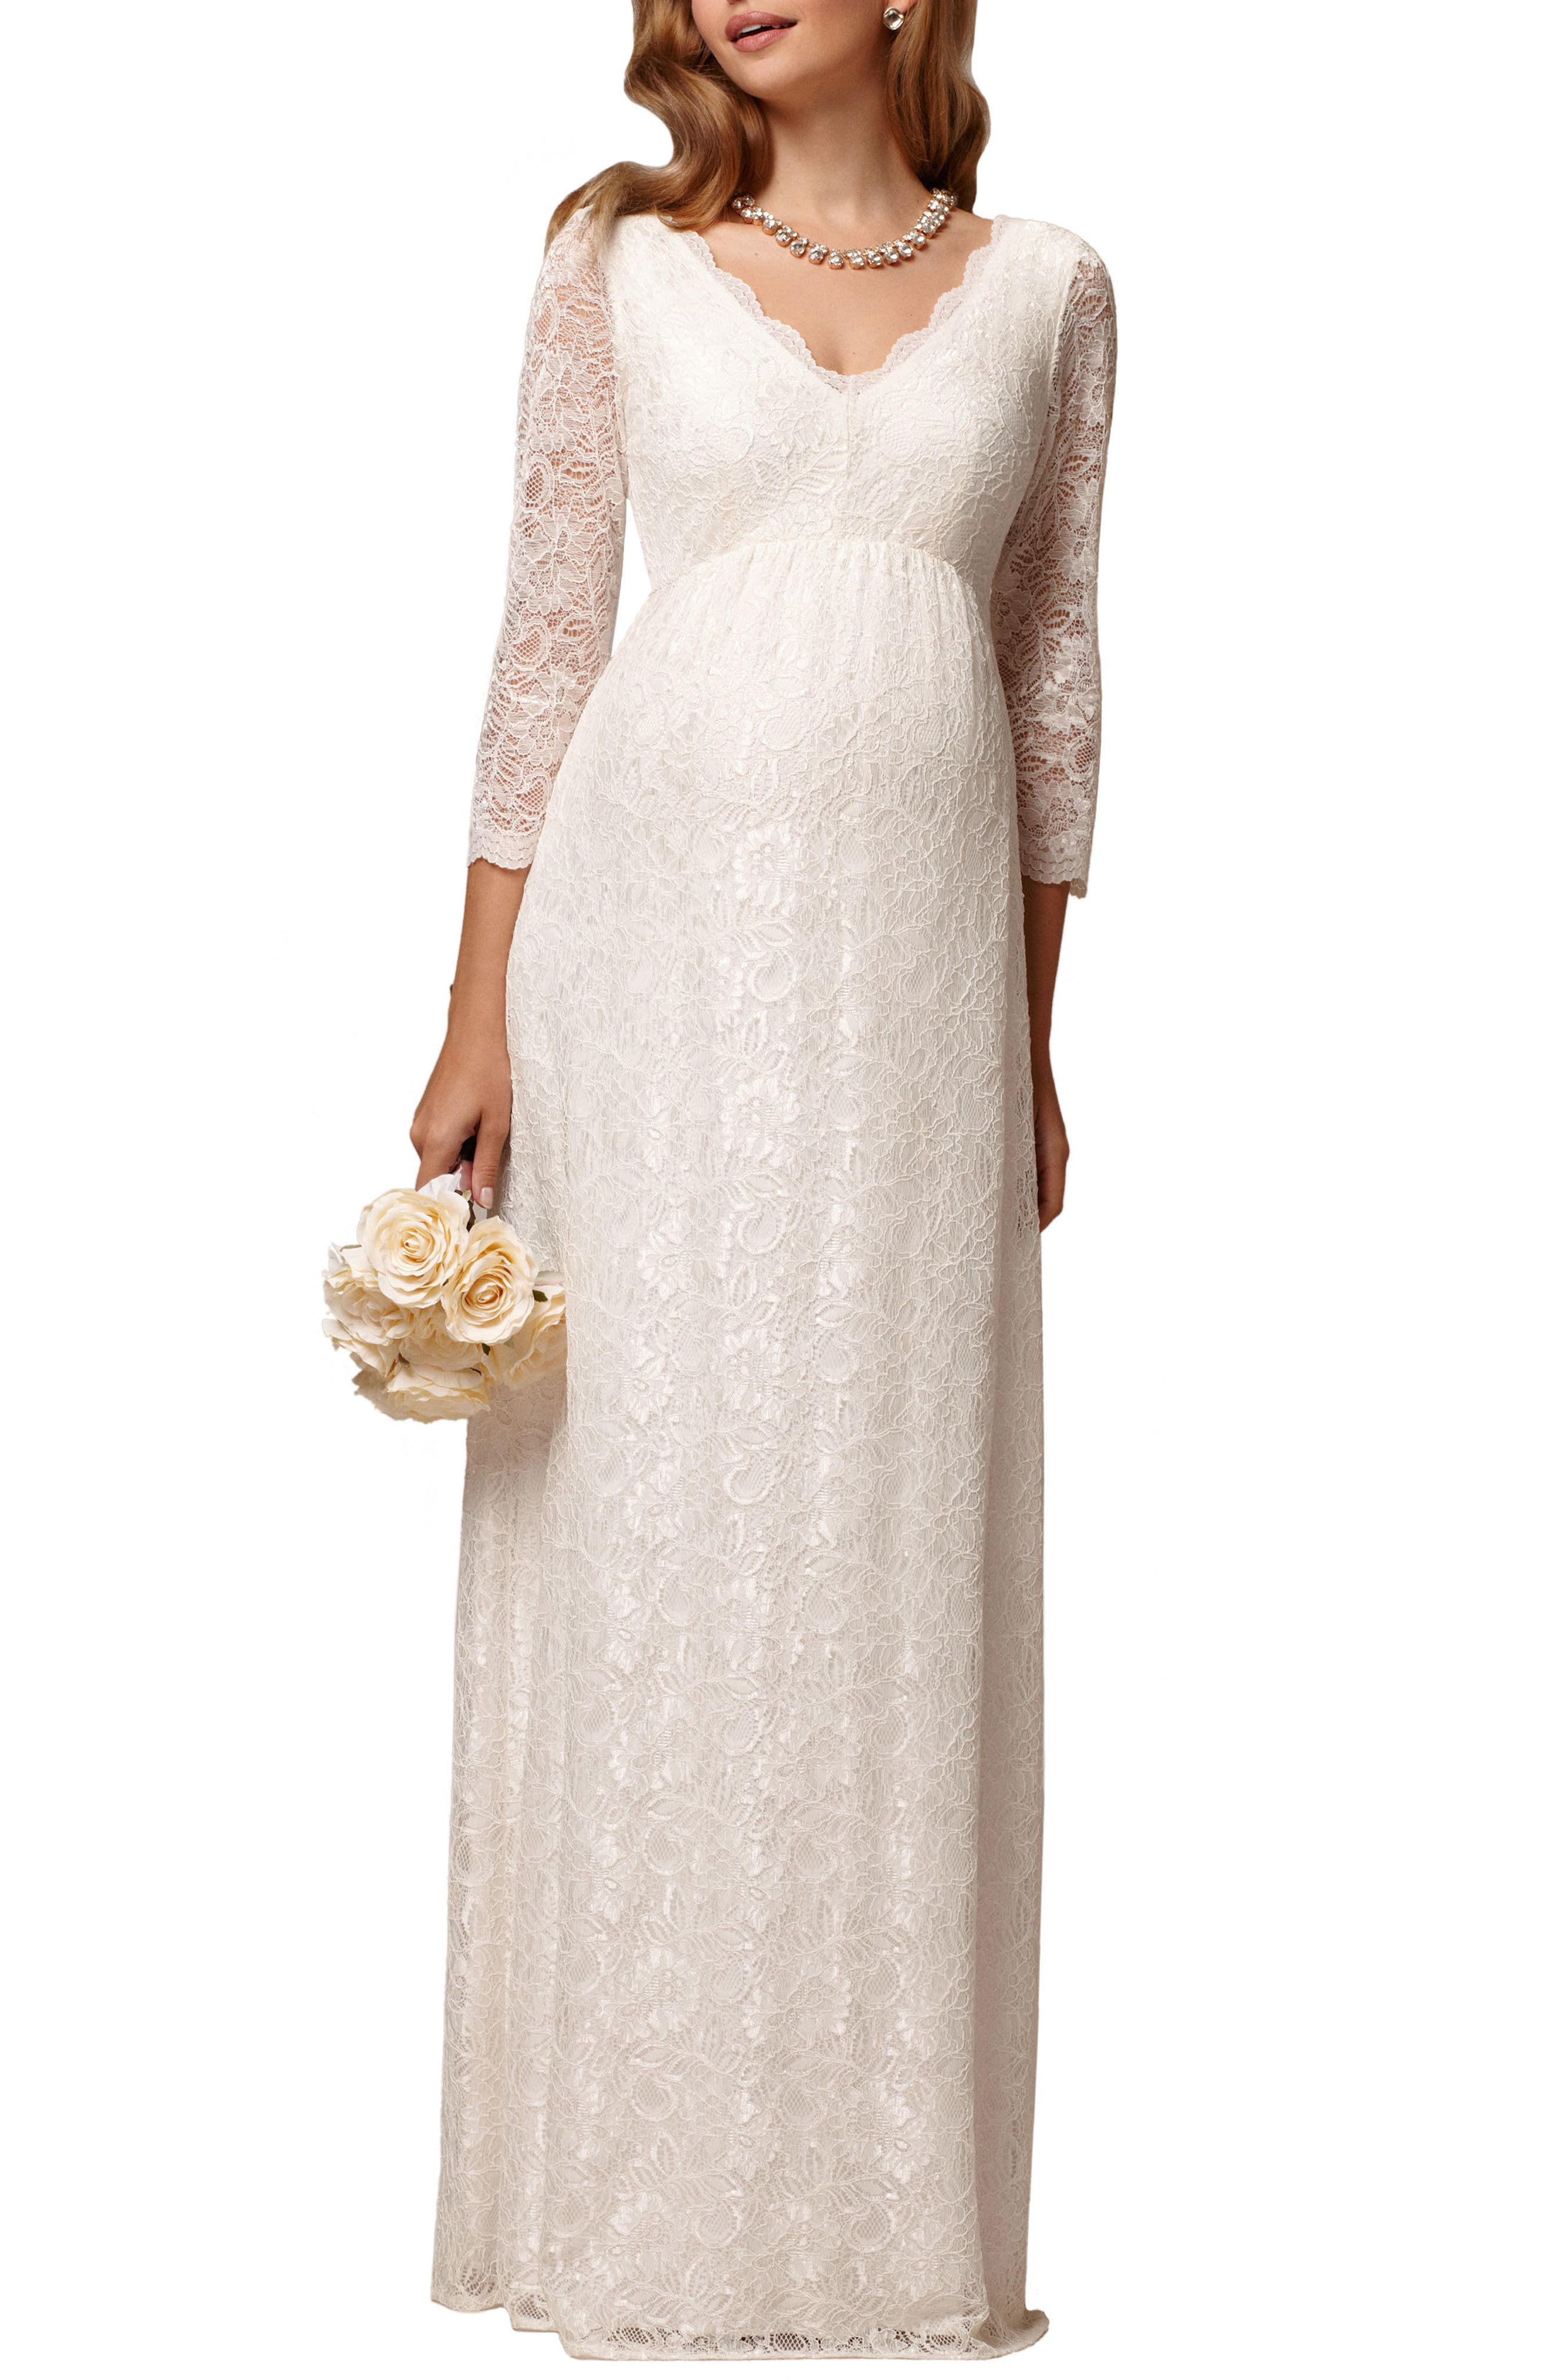 Chloe Lace Maternity Gown,                         Main,                         color, Ivory